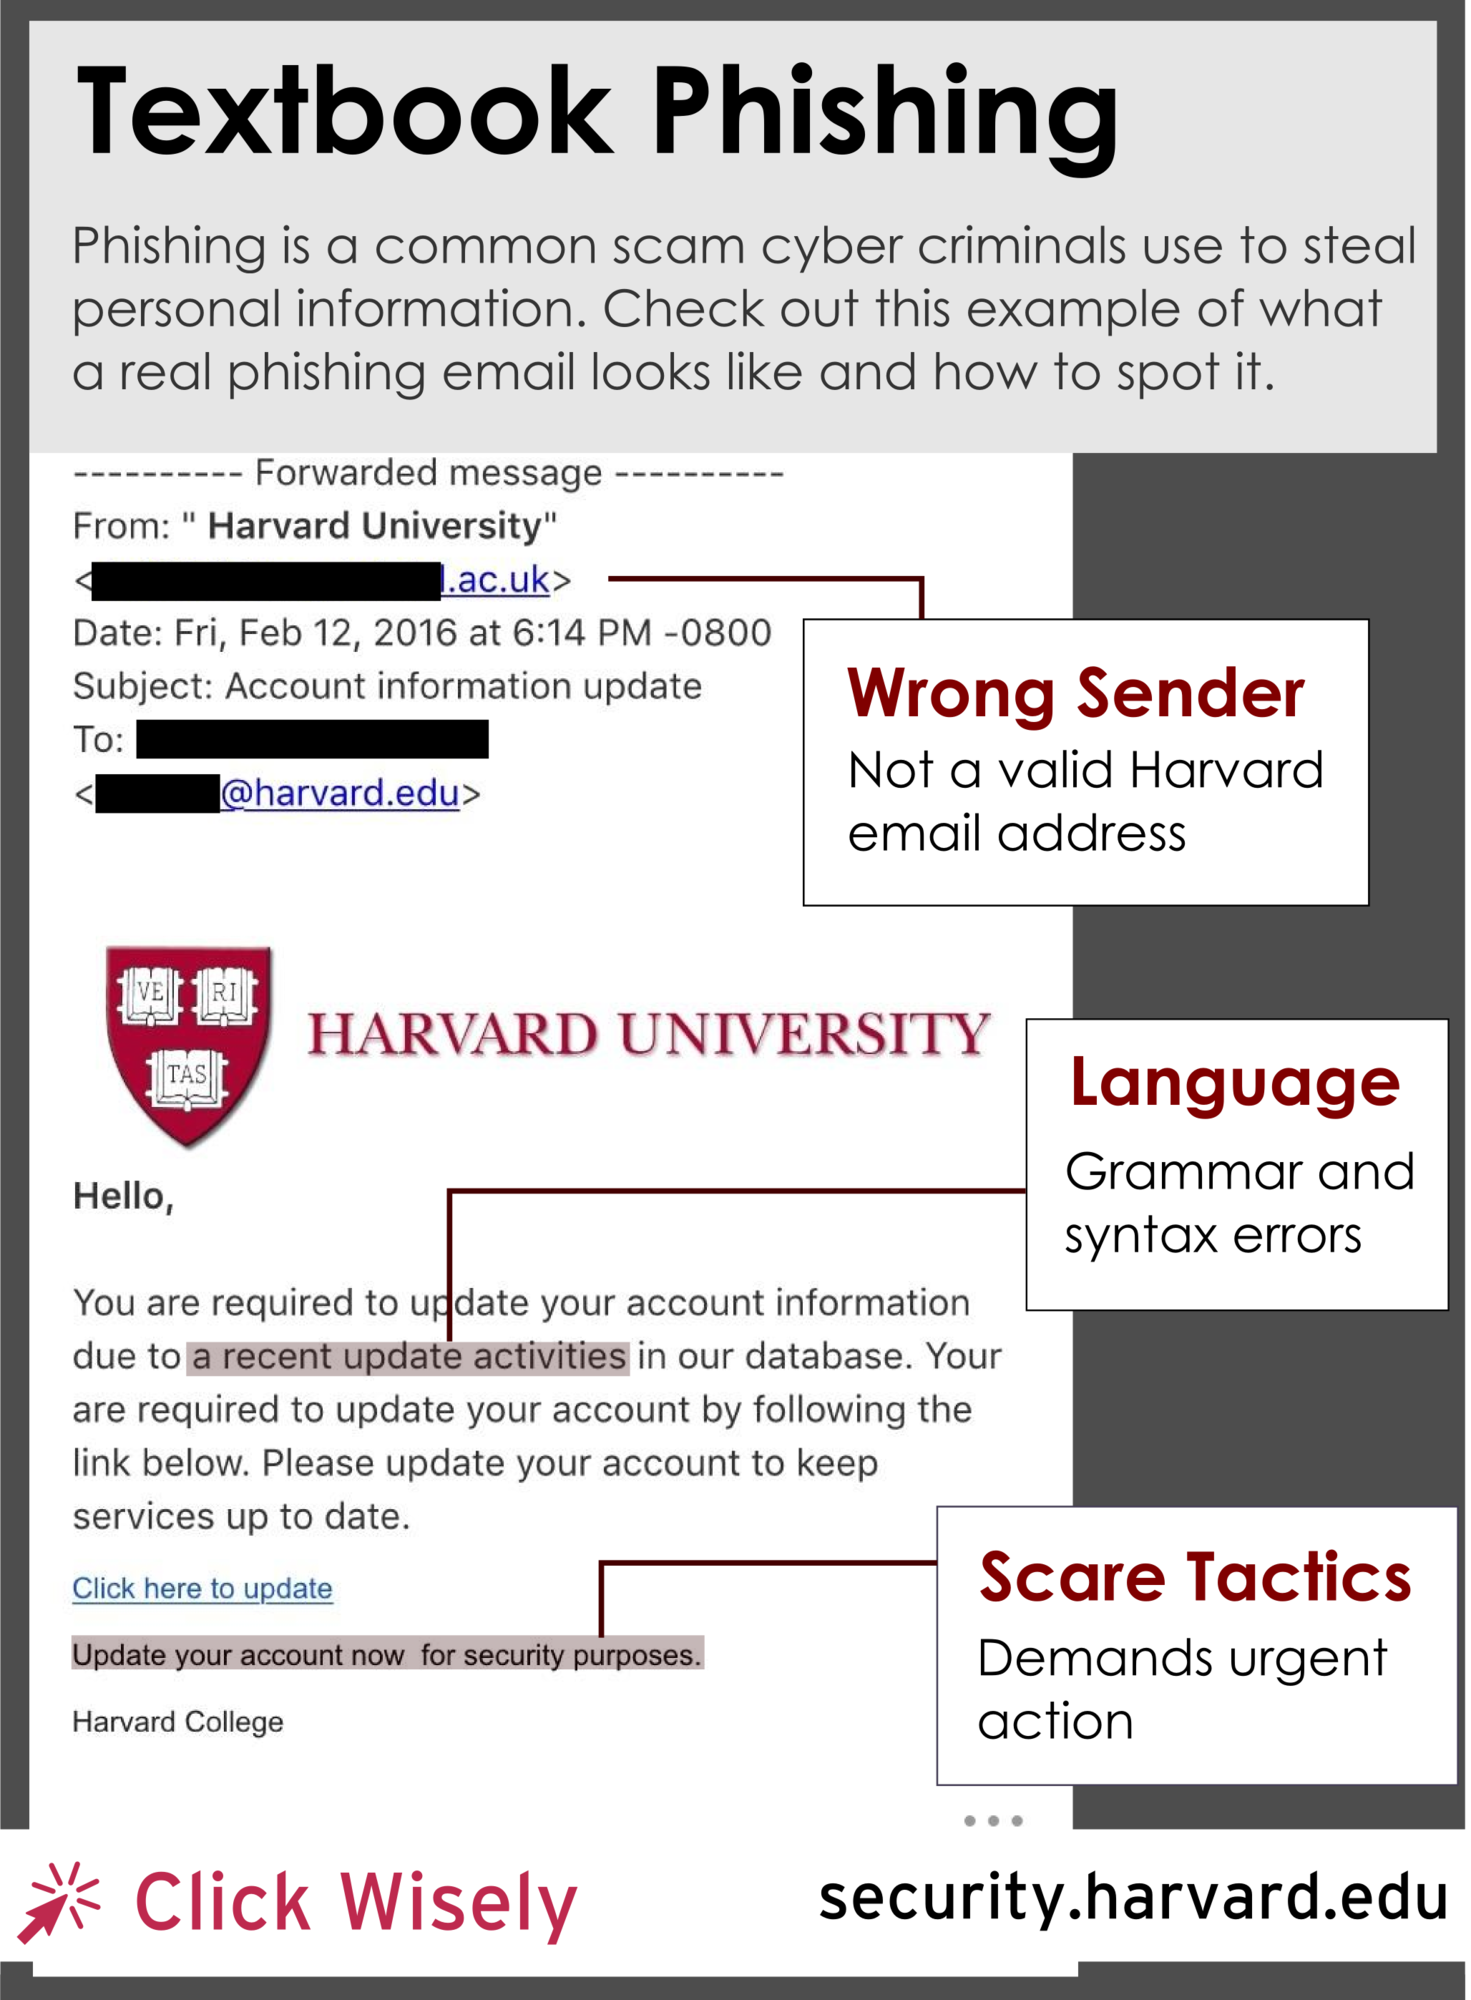 Harvard Targeted Phishing Campaign | Information Security